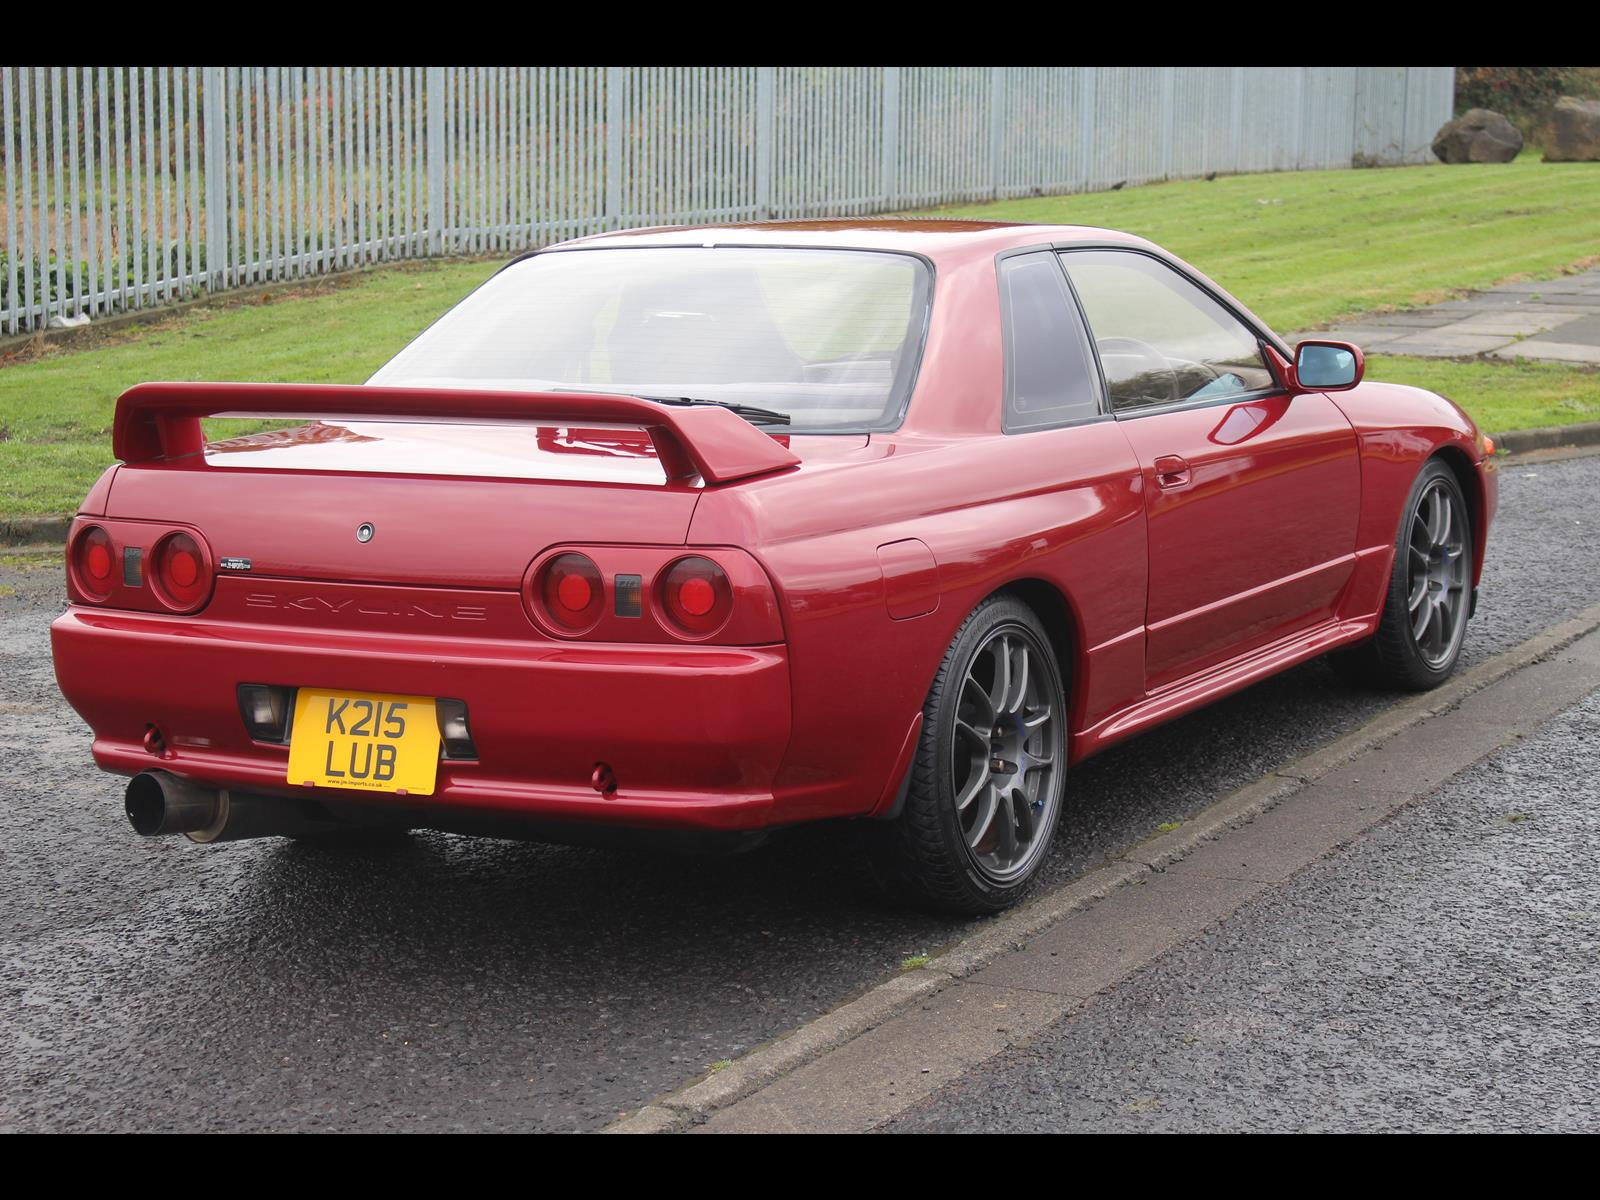 1992 nissan skyline r32 gtr 5 speed manual 430ps forged engine n1 turbos. Black Bedroom Furniture Sets. Home Design Ideas